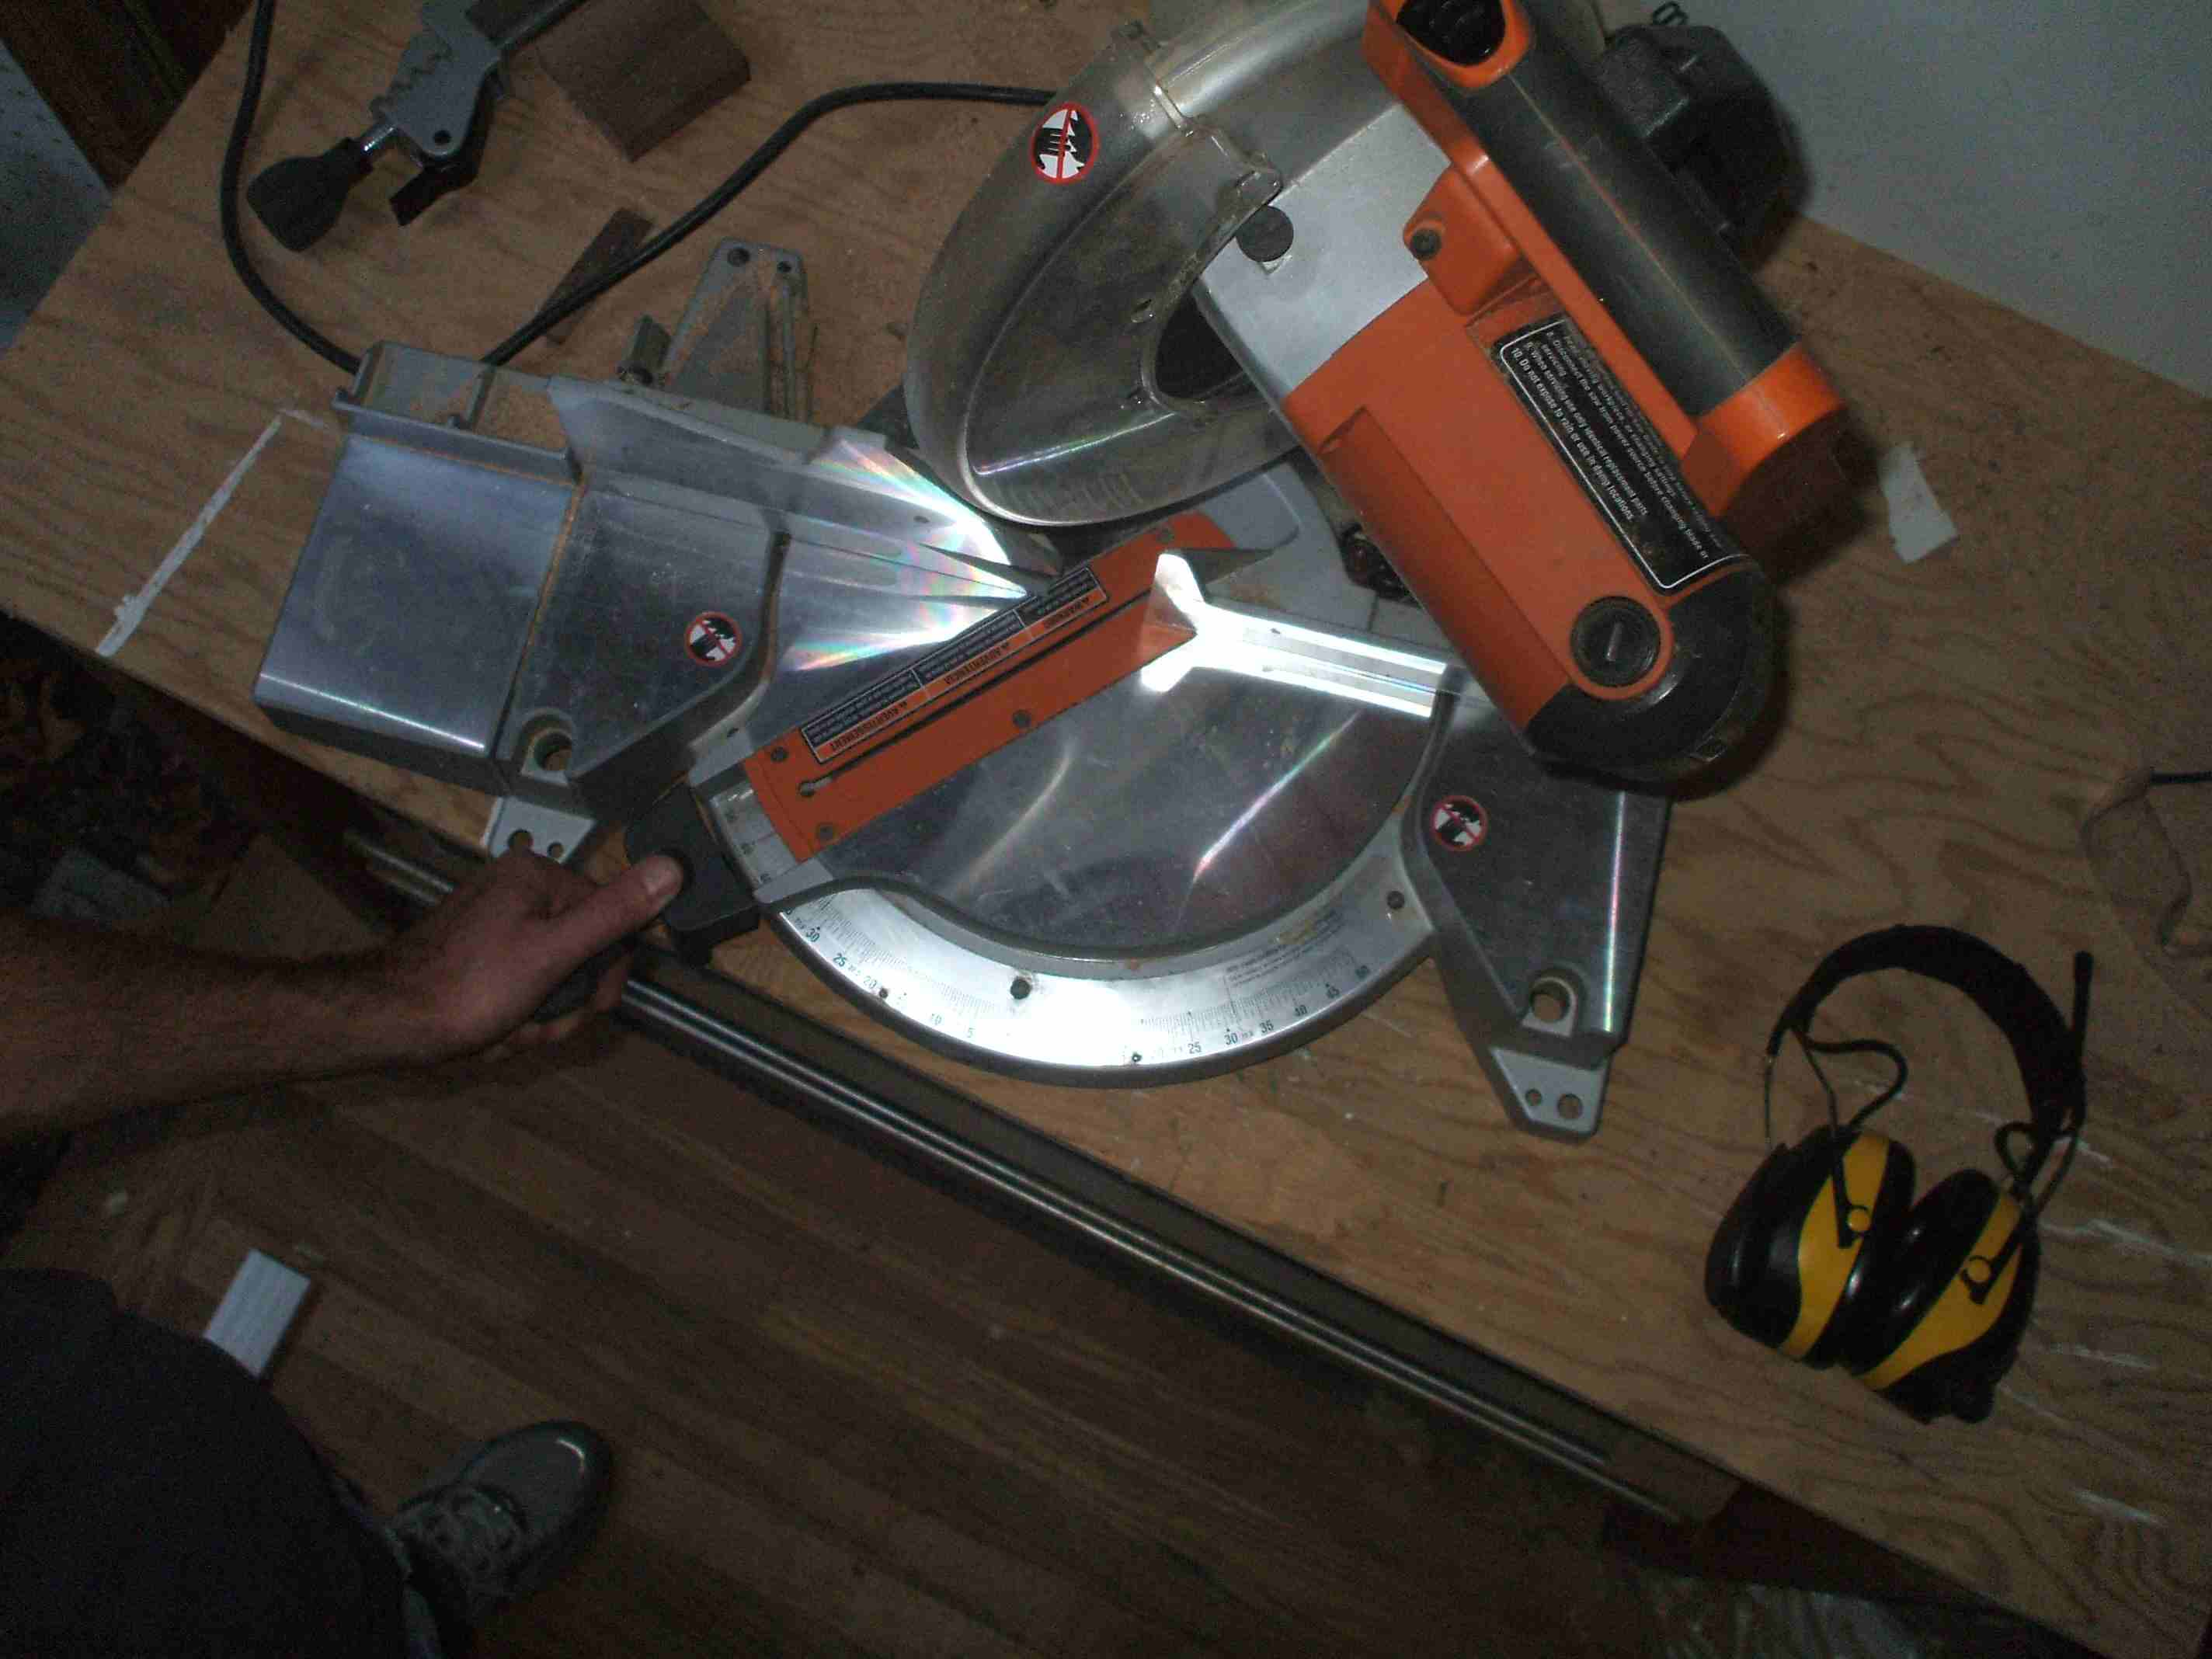 Set Saw Before Cutting Second Baseboard